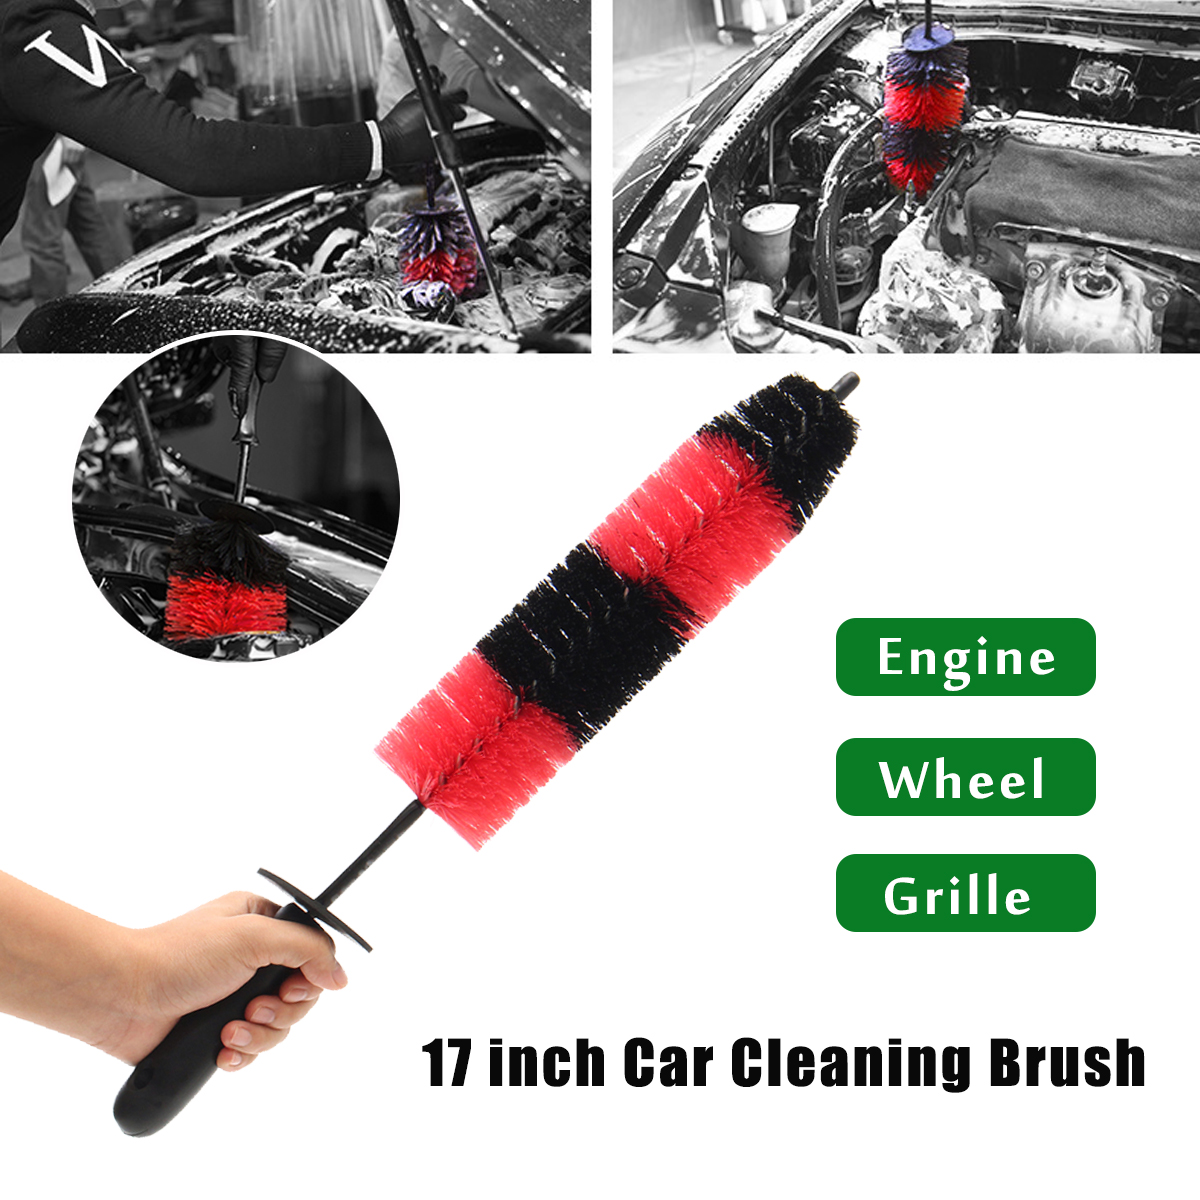 17 Inch Car Truck Motor Bike Wheel Engine Grille Wash Brush Tire Rim Cleaning Tool